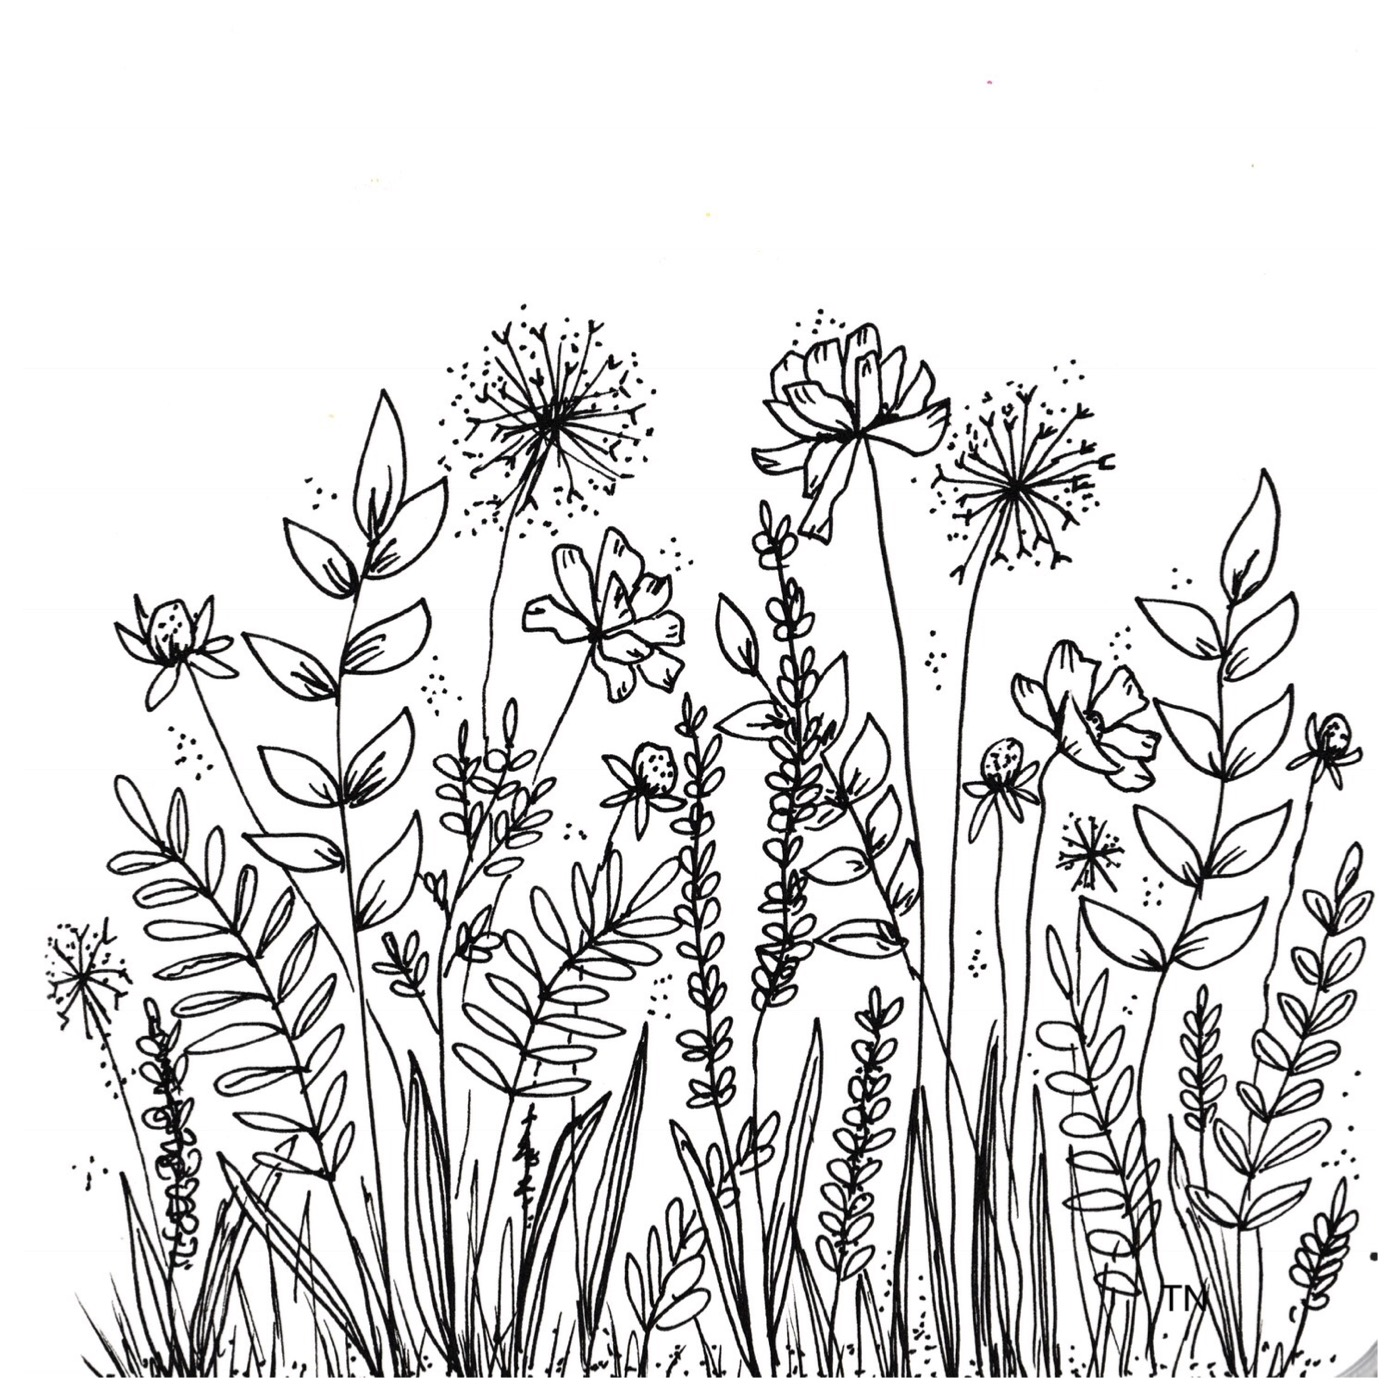 Botanical Flower Line Drawing : Botanical line drawings and doodles